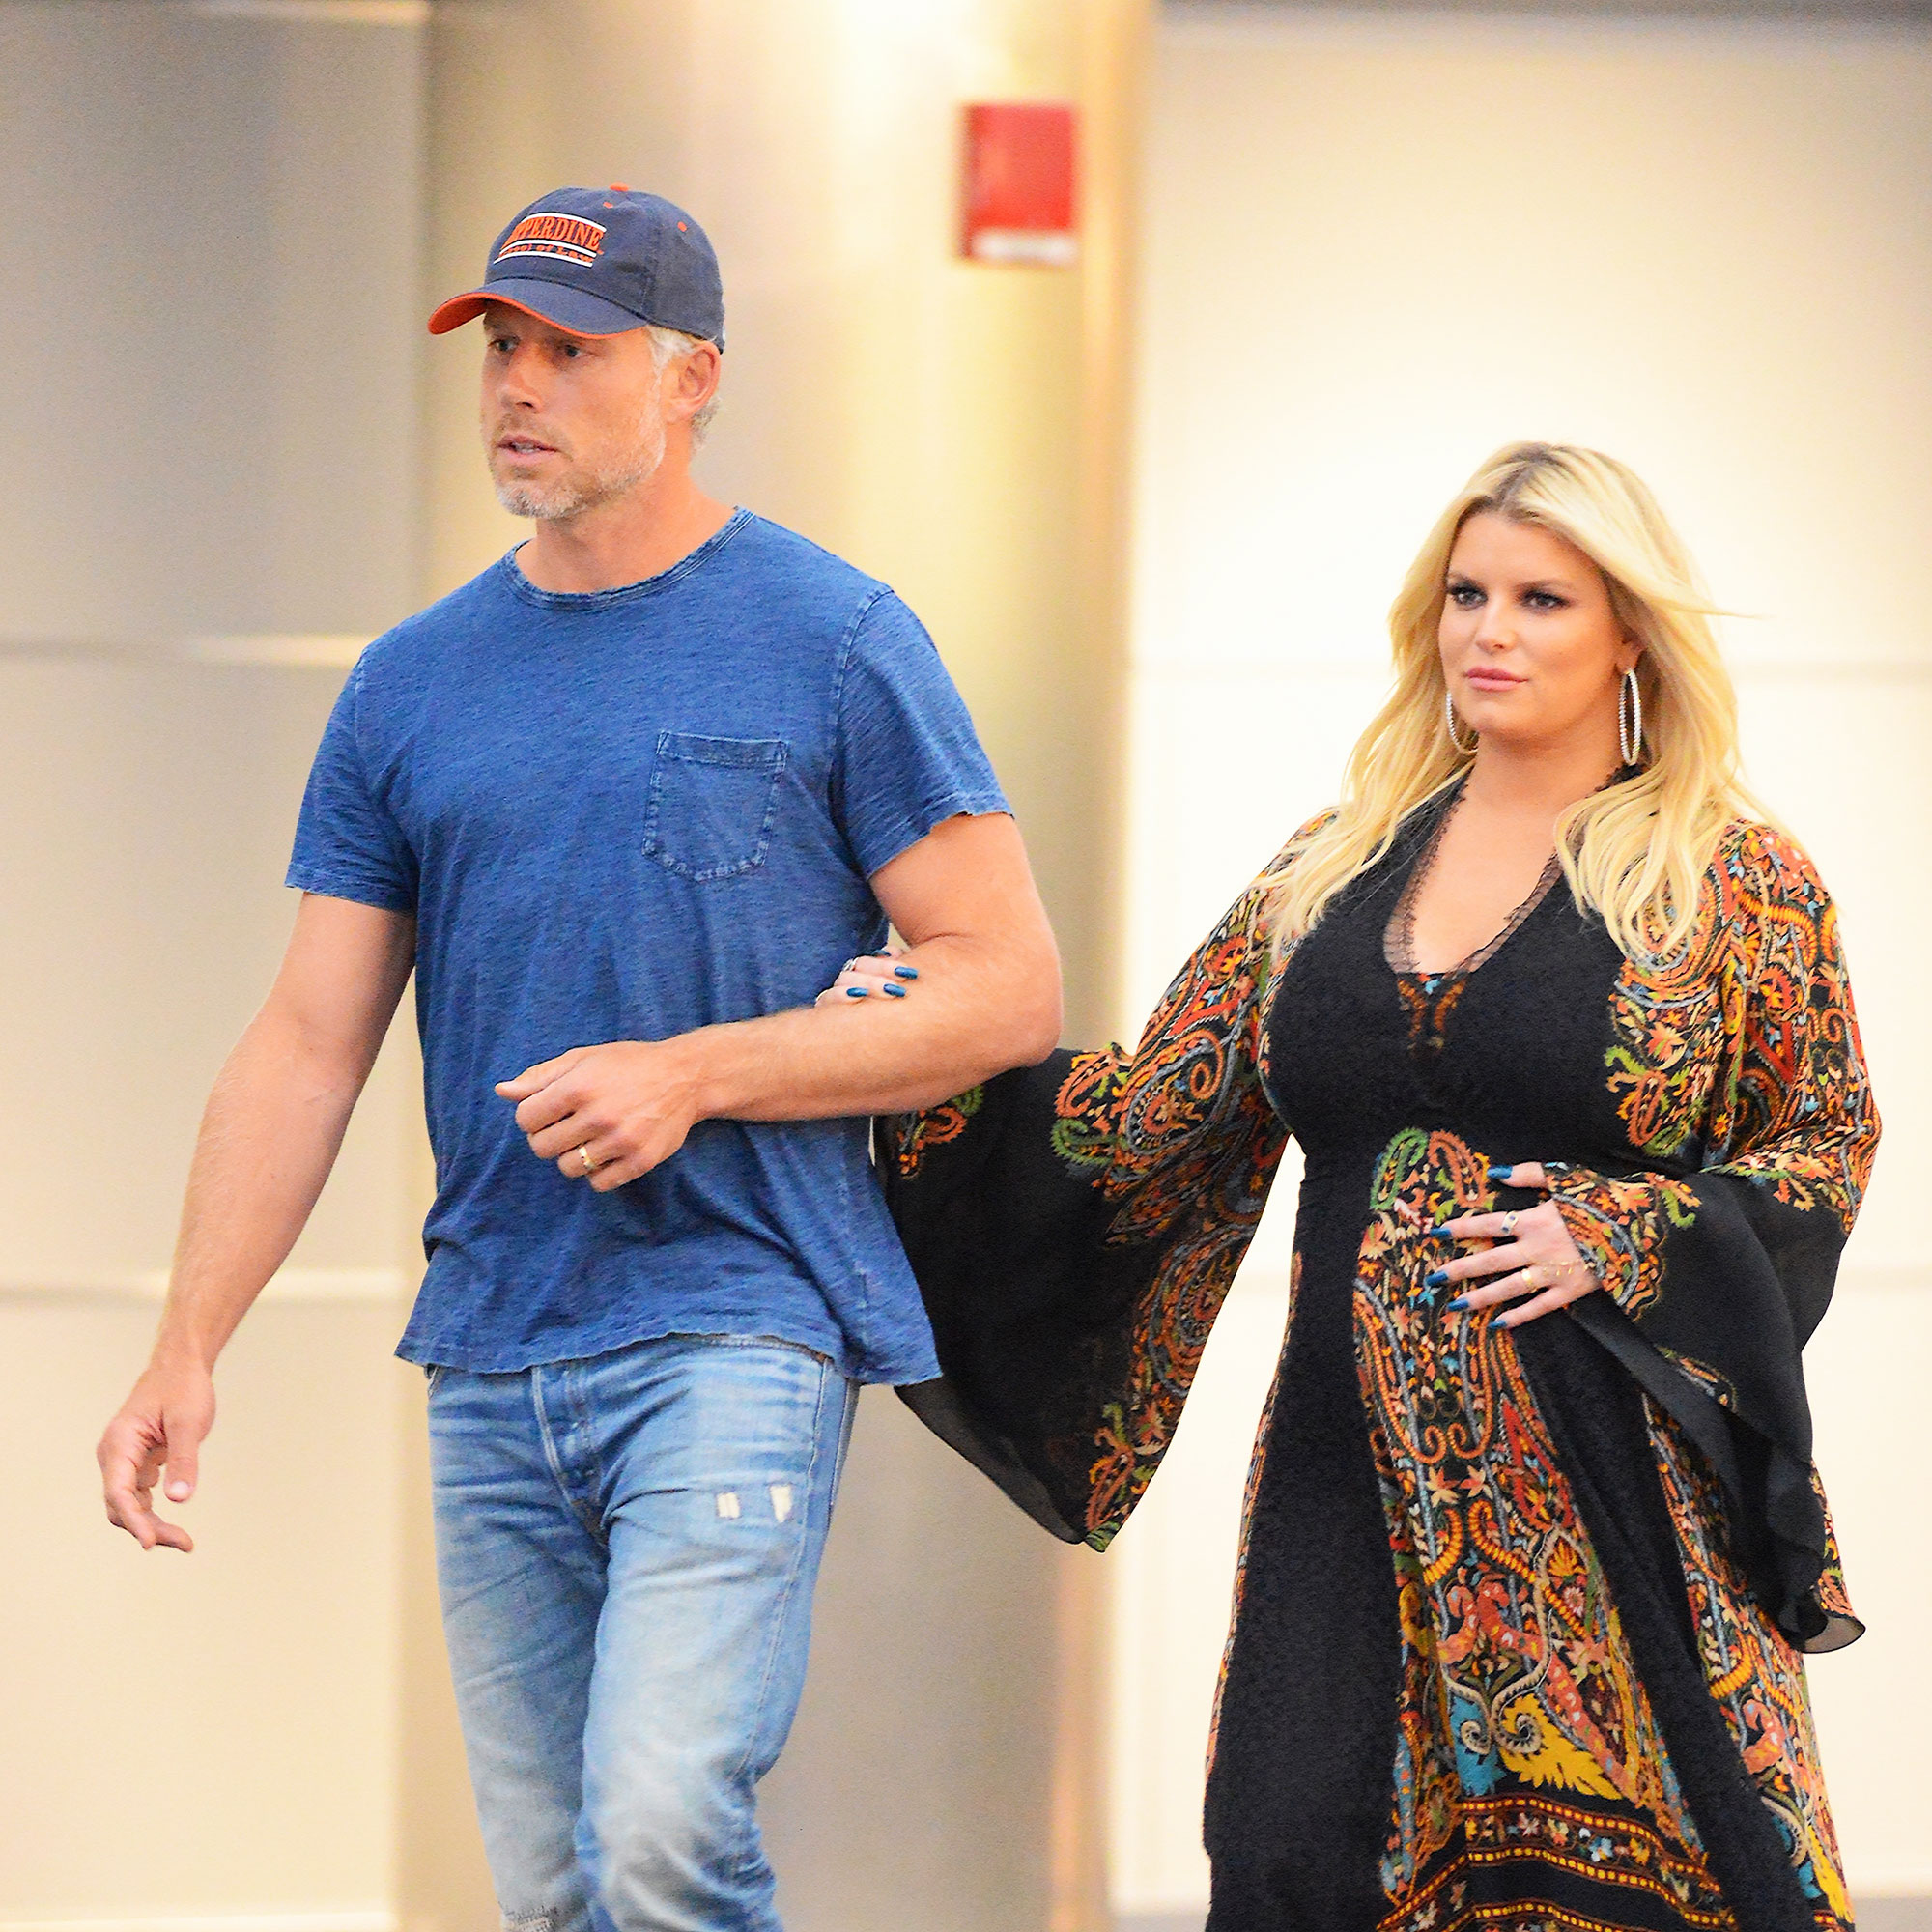 """Celebrity Babies of 2019 Jessica Simpson and husband Eric Johnson - The singer and her husband welcomed their third child together on March 19 after a September pregnancy announcement. """"Birdie Mae Johnson. 3.19.19. 10 Pounds 13 Ounces,"""" Simpson captioned her Instagram reveal."""